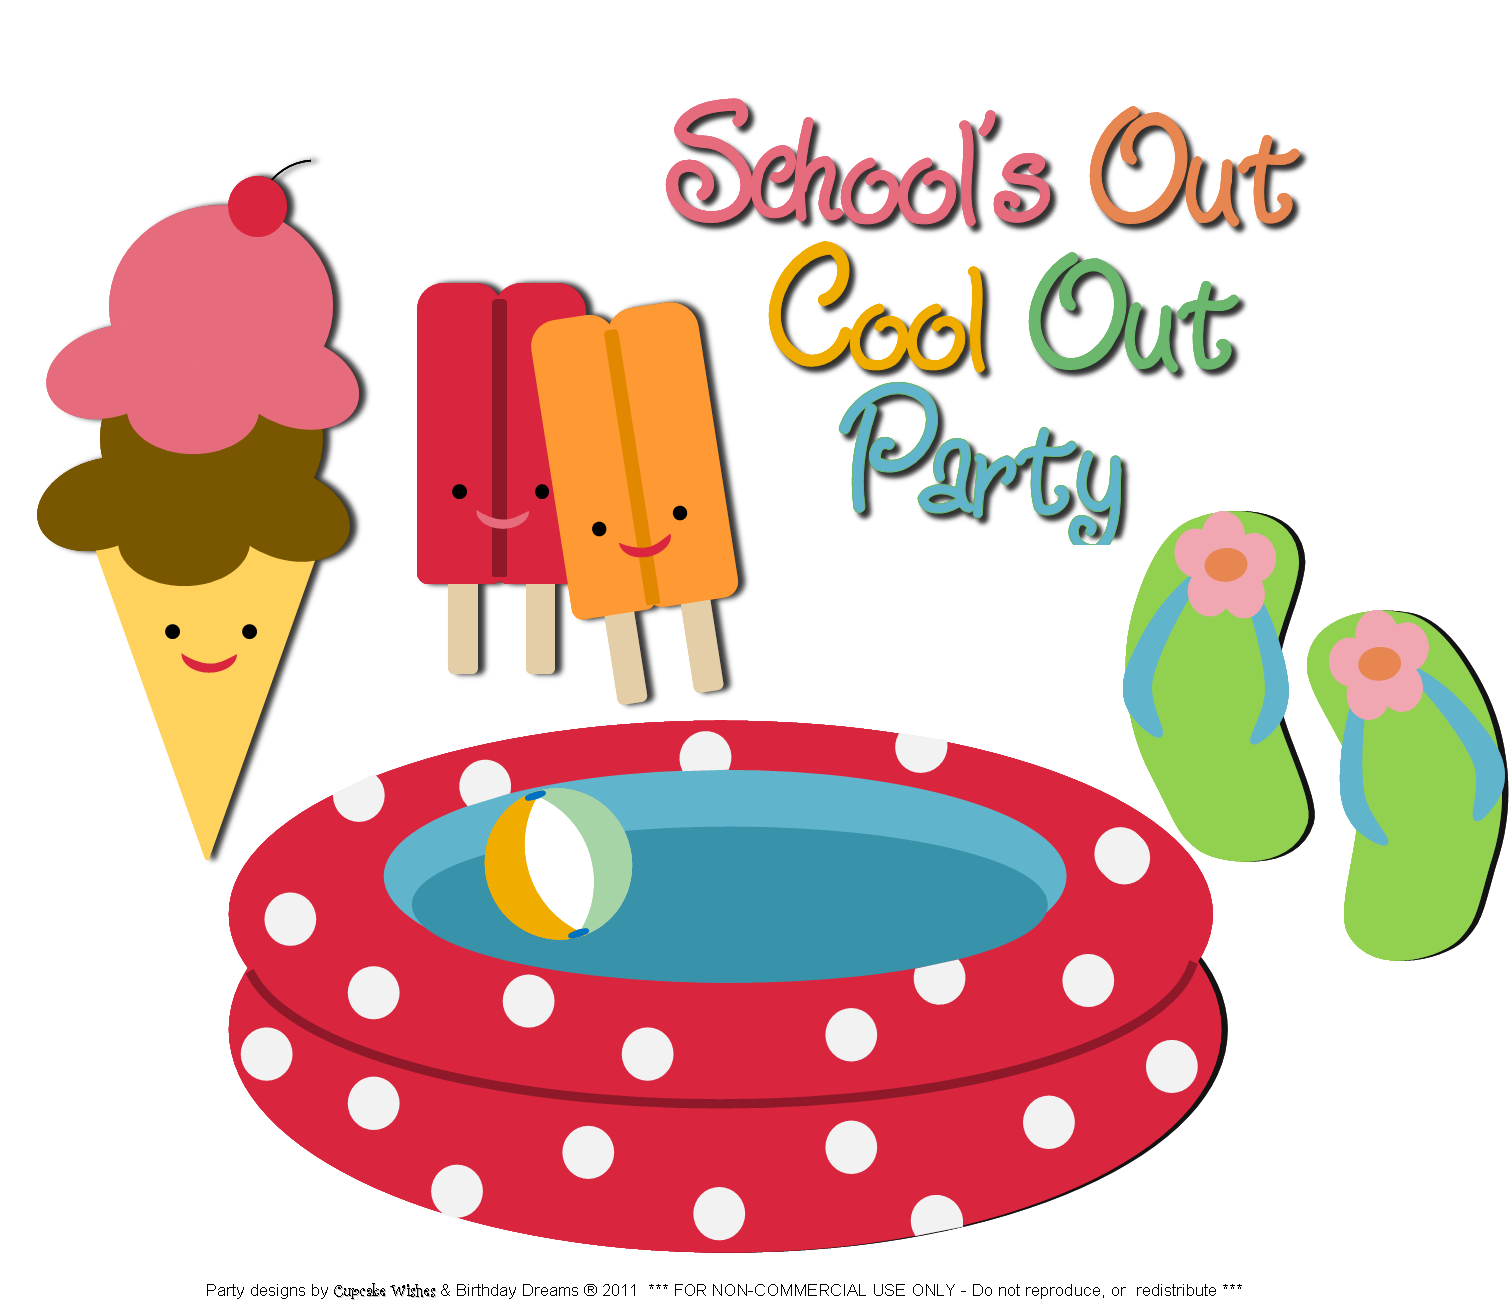 Free clipart images for school clip art library stock Schools Out Party Clipart clip art library stock